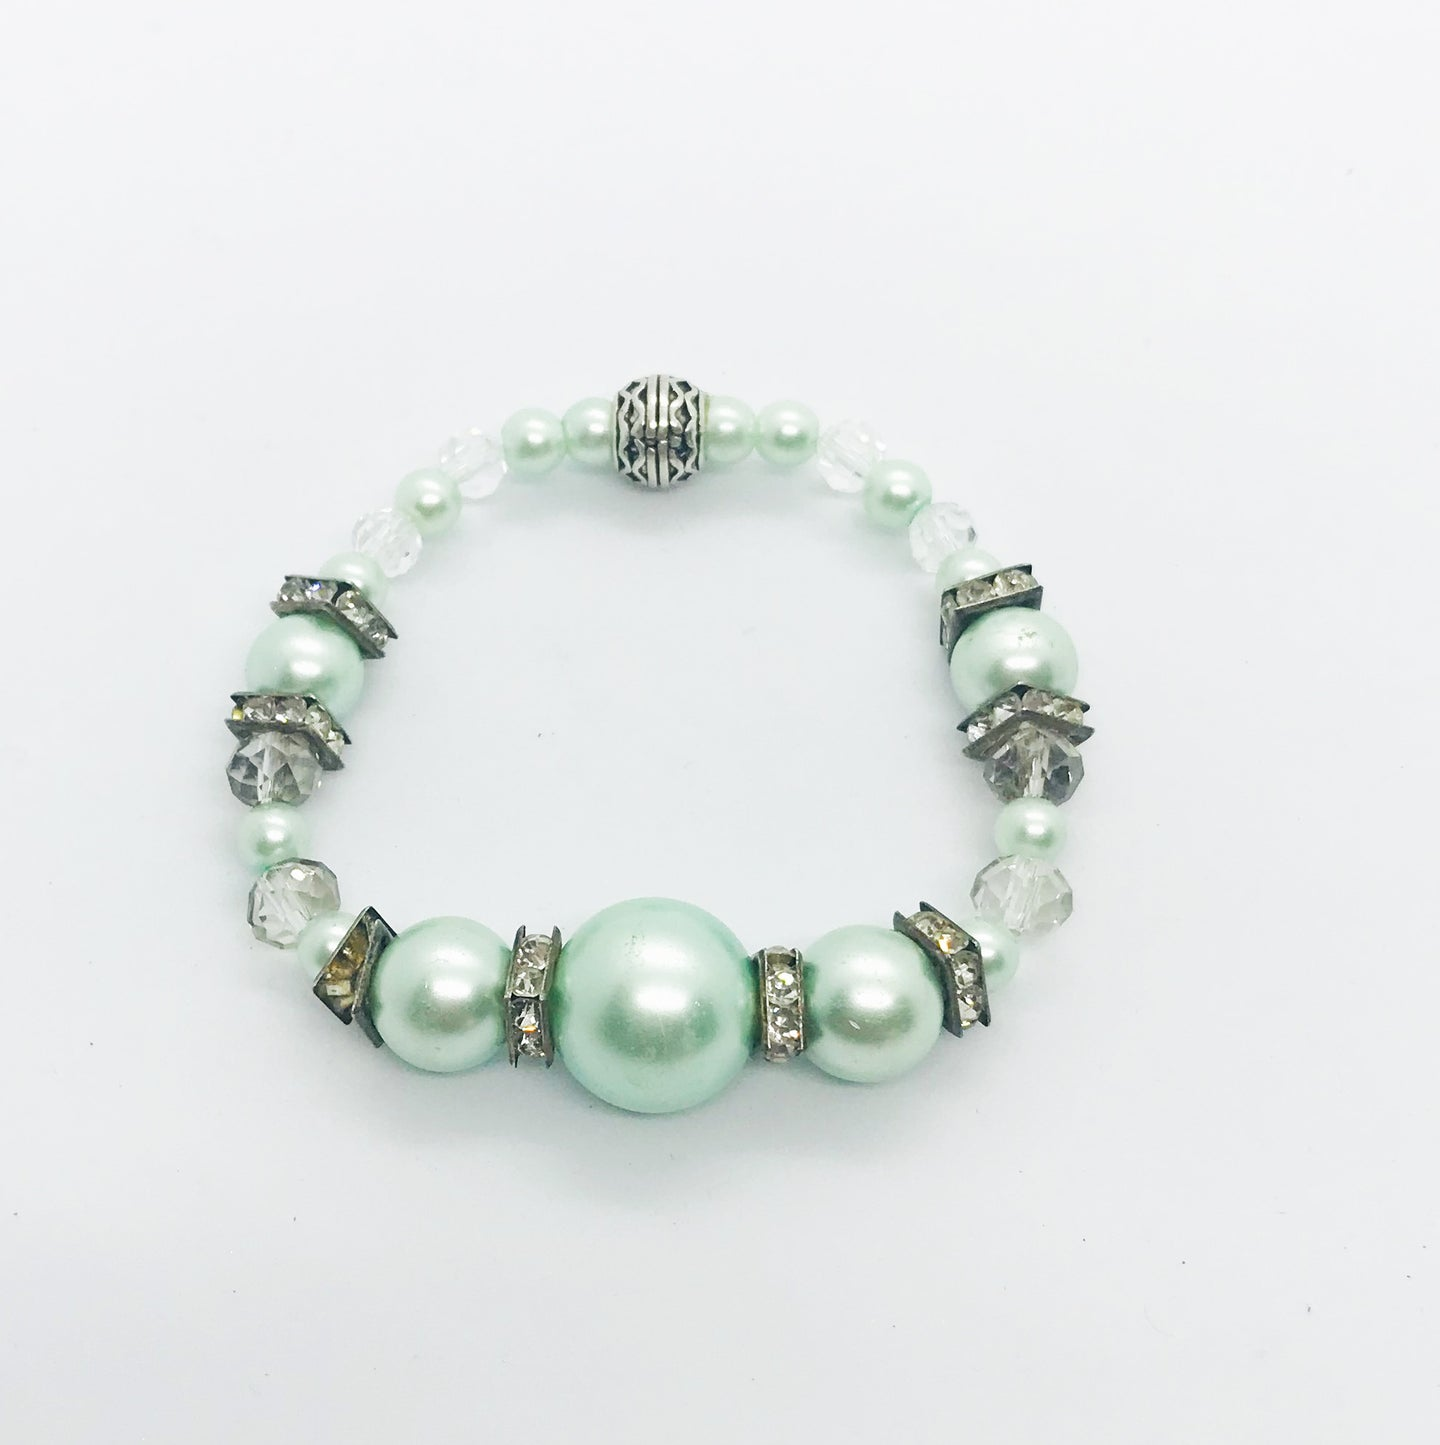 Glass Bead Stretchy Bracelet - B650